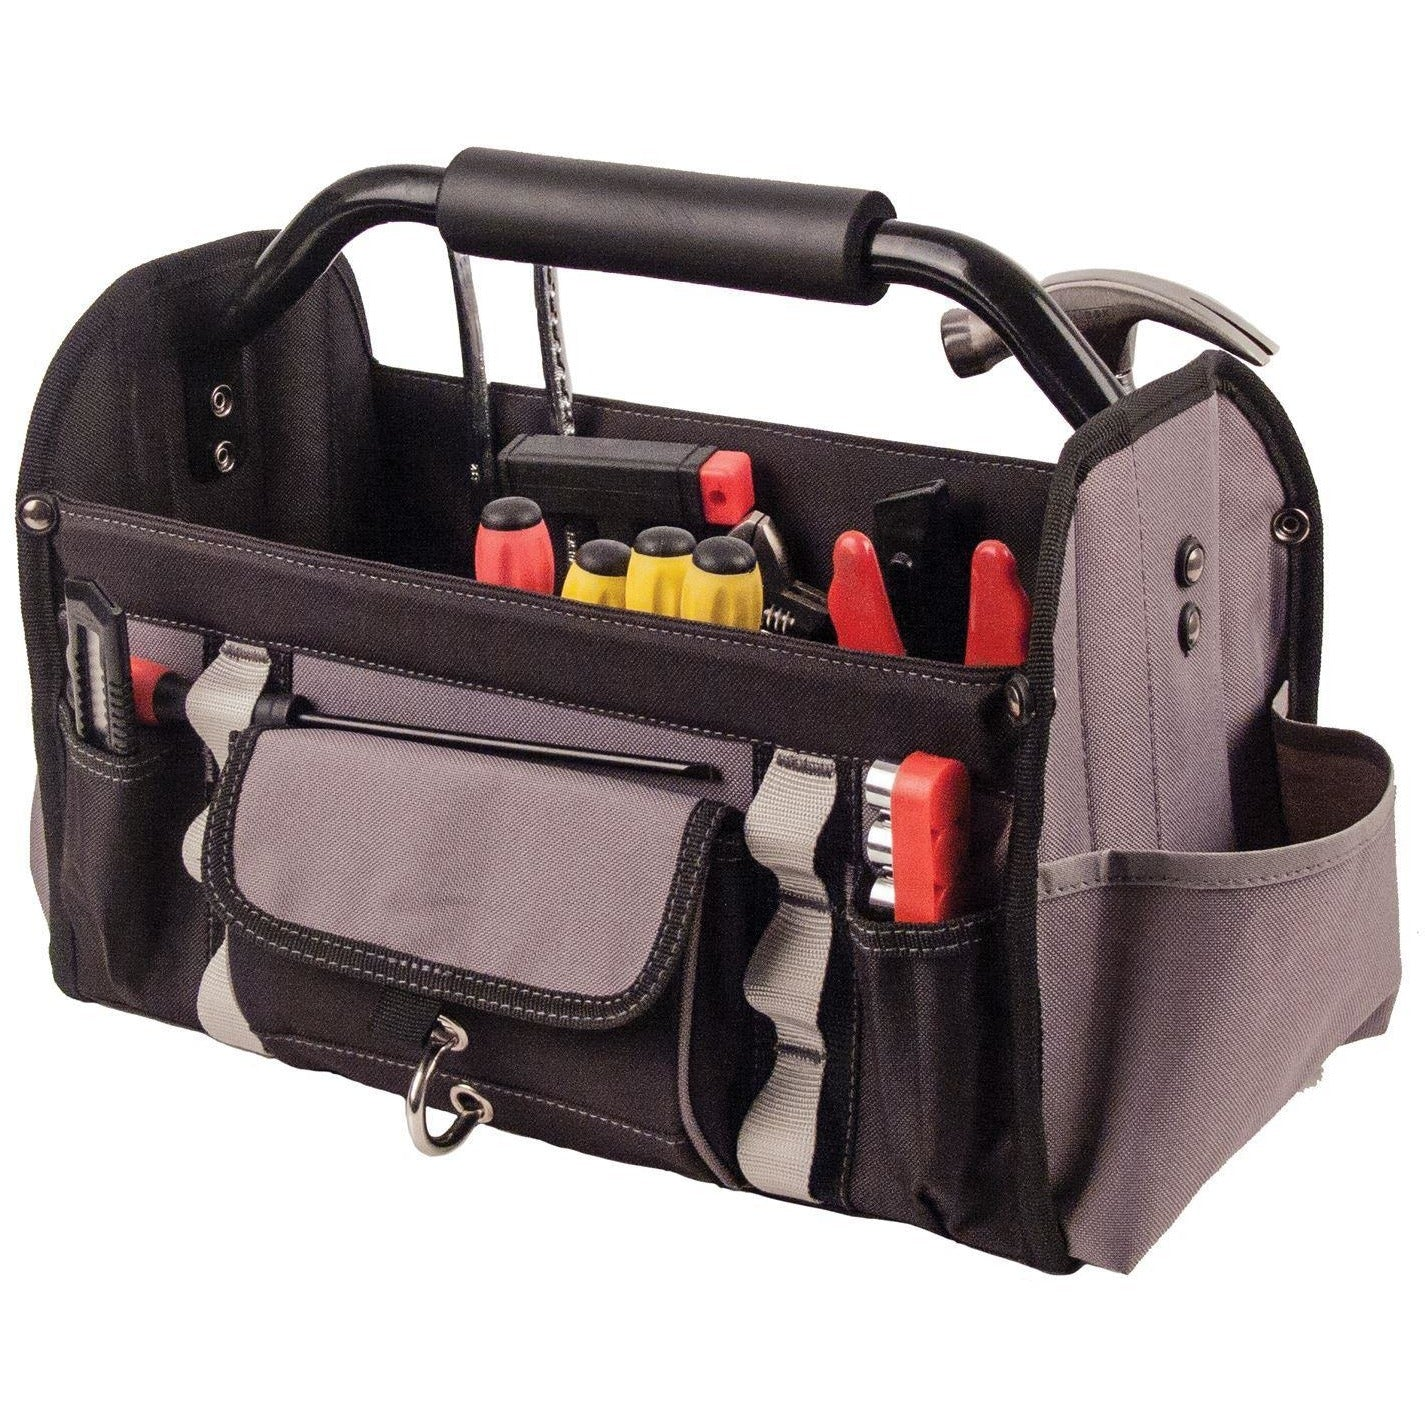 Portwest Open Tool Bag Black 38cm x 20cm x 25cm  TB02